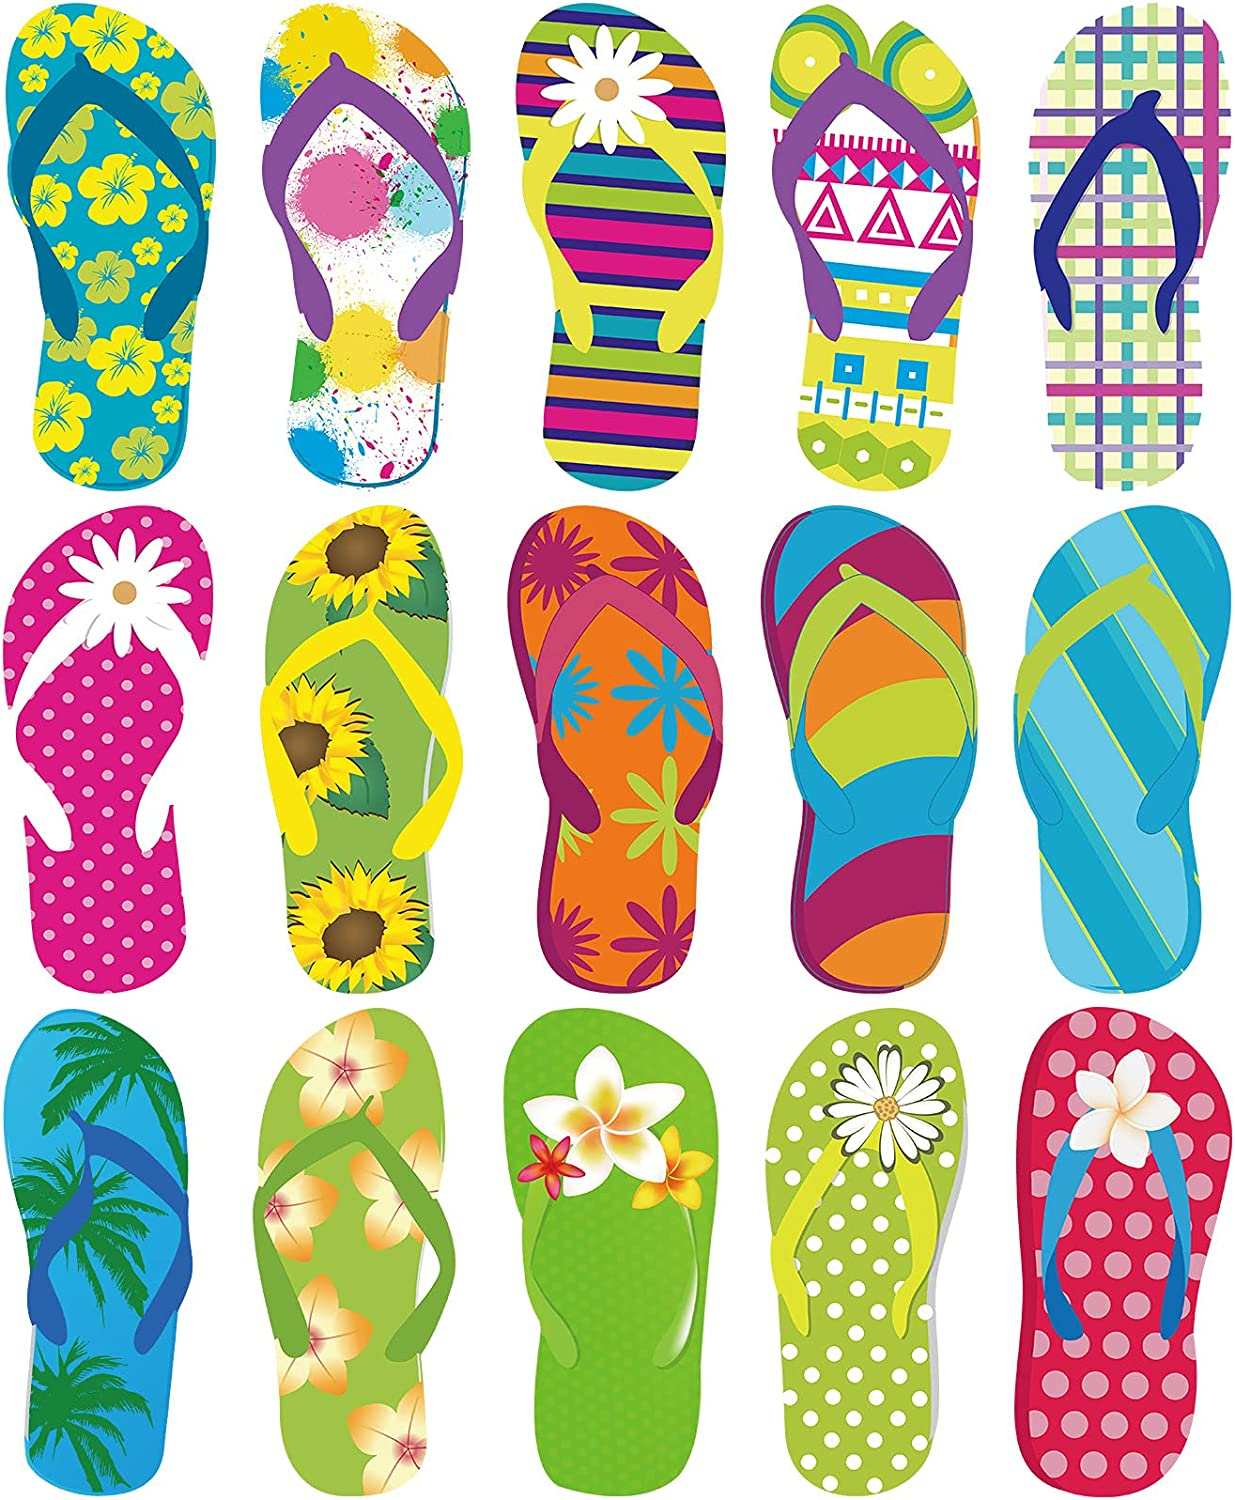 60 Pieces Flip-Flop Accents Colorful Flip-Flop Cutouts Bulletin Board Cutouts Wall Decor Hawiian Party Cutouts with Glue Point Dots for Classroom Party Decor